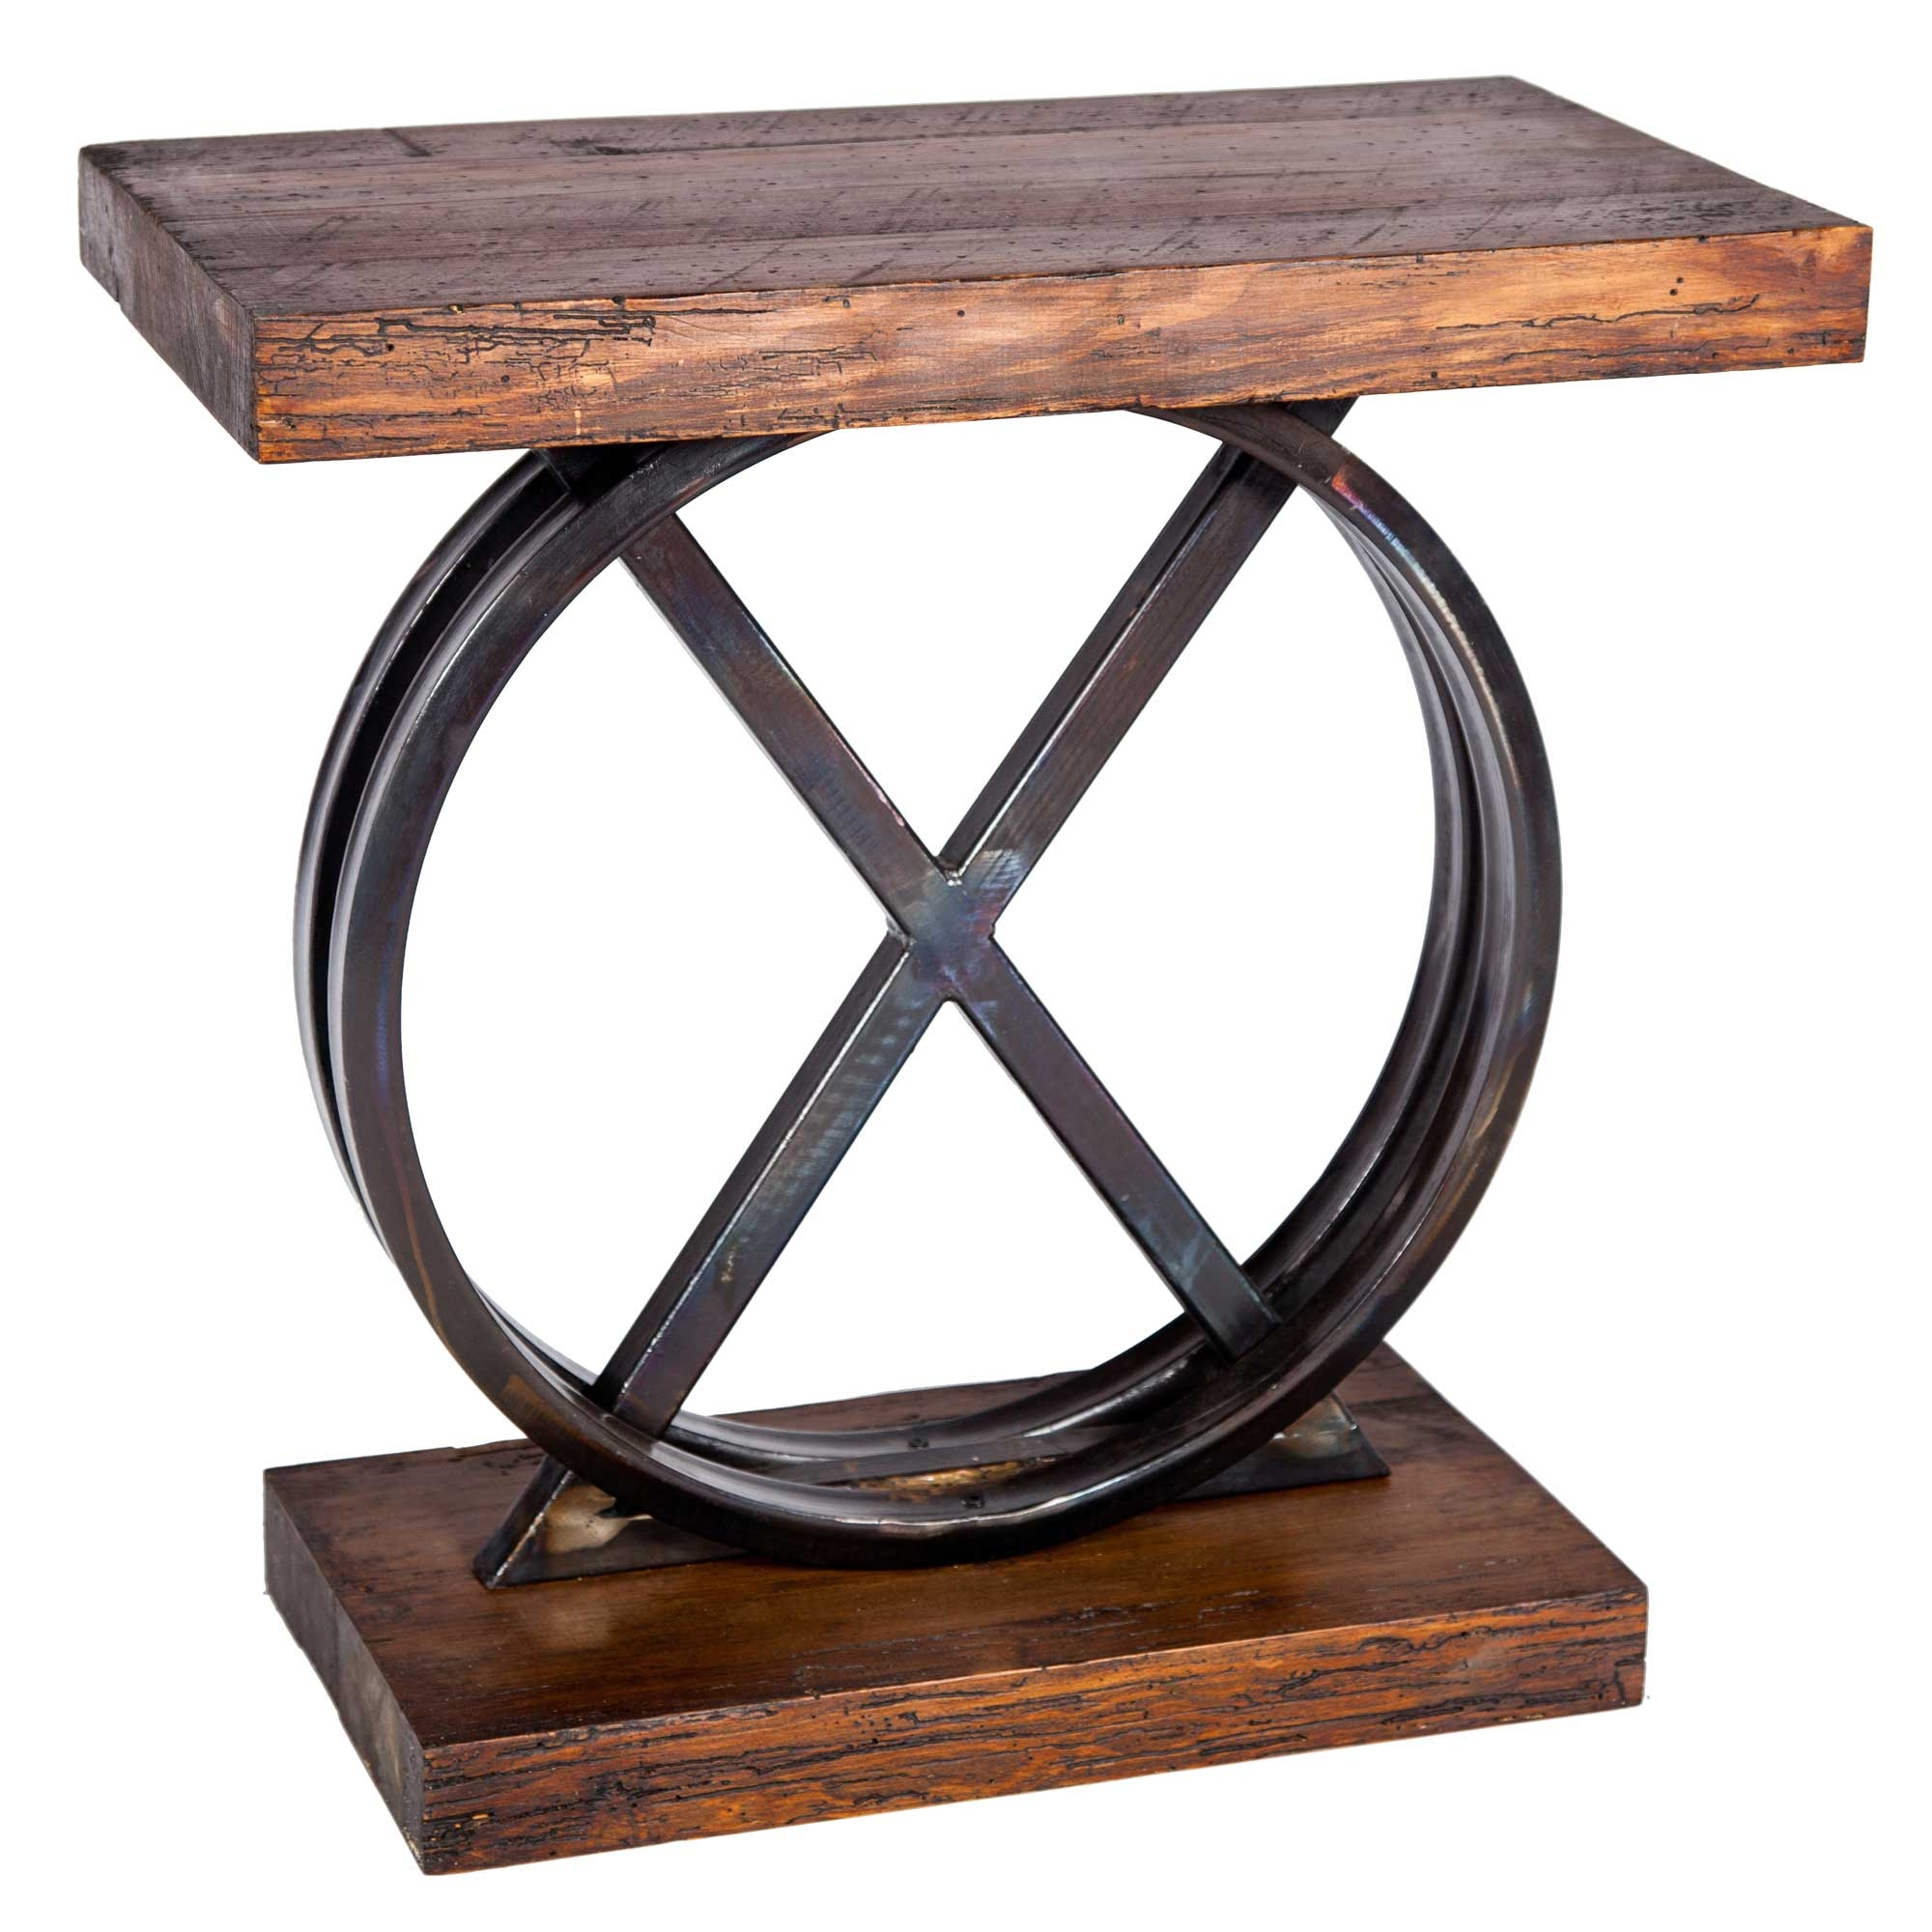 Wrought Iron And Wood End Tables Wood Table With Wrought Iron Base Shapeyourminds